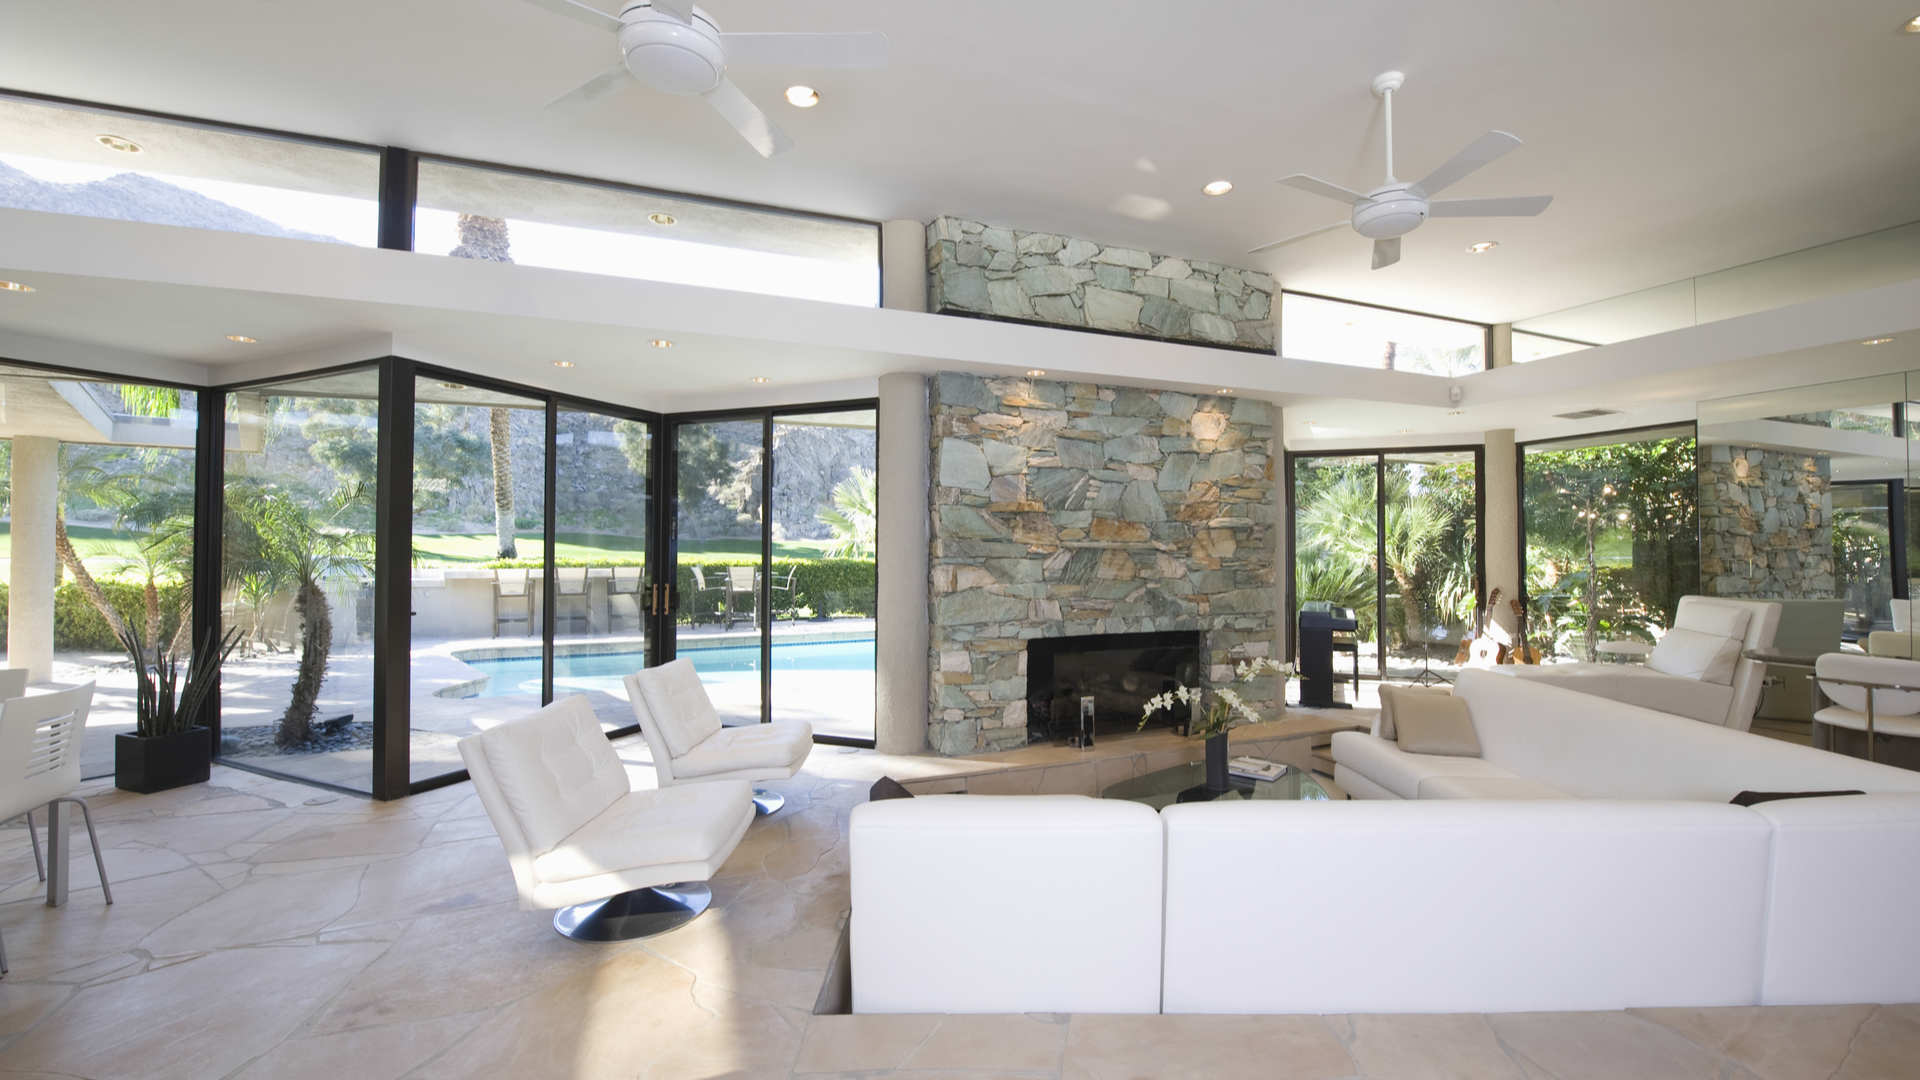 What Are The Advantages Of Having Aluminium Doors And Windows?